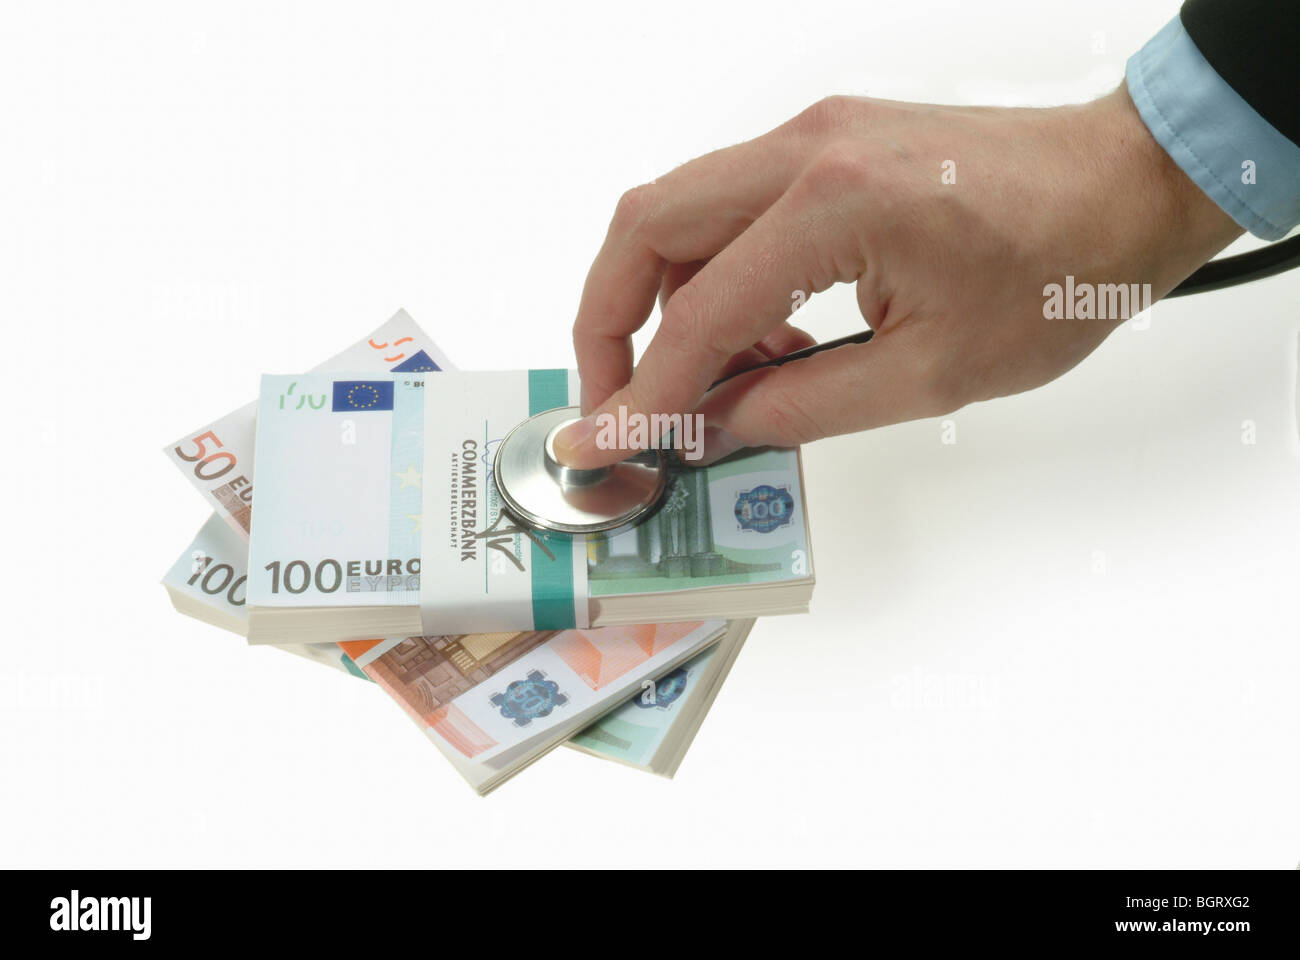 Hand with stethoscope doing a checkup on Euro banknotes Stock Photo